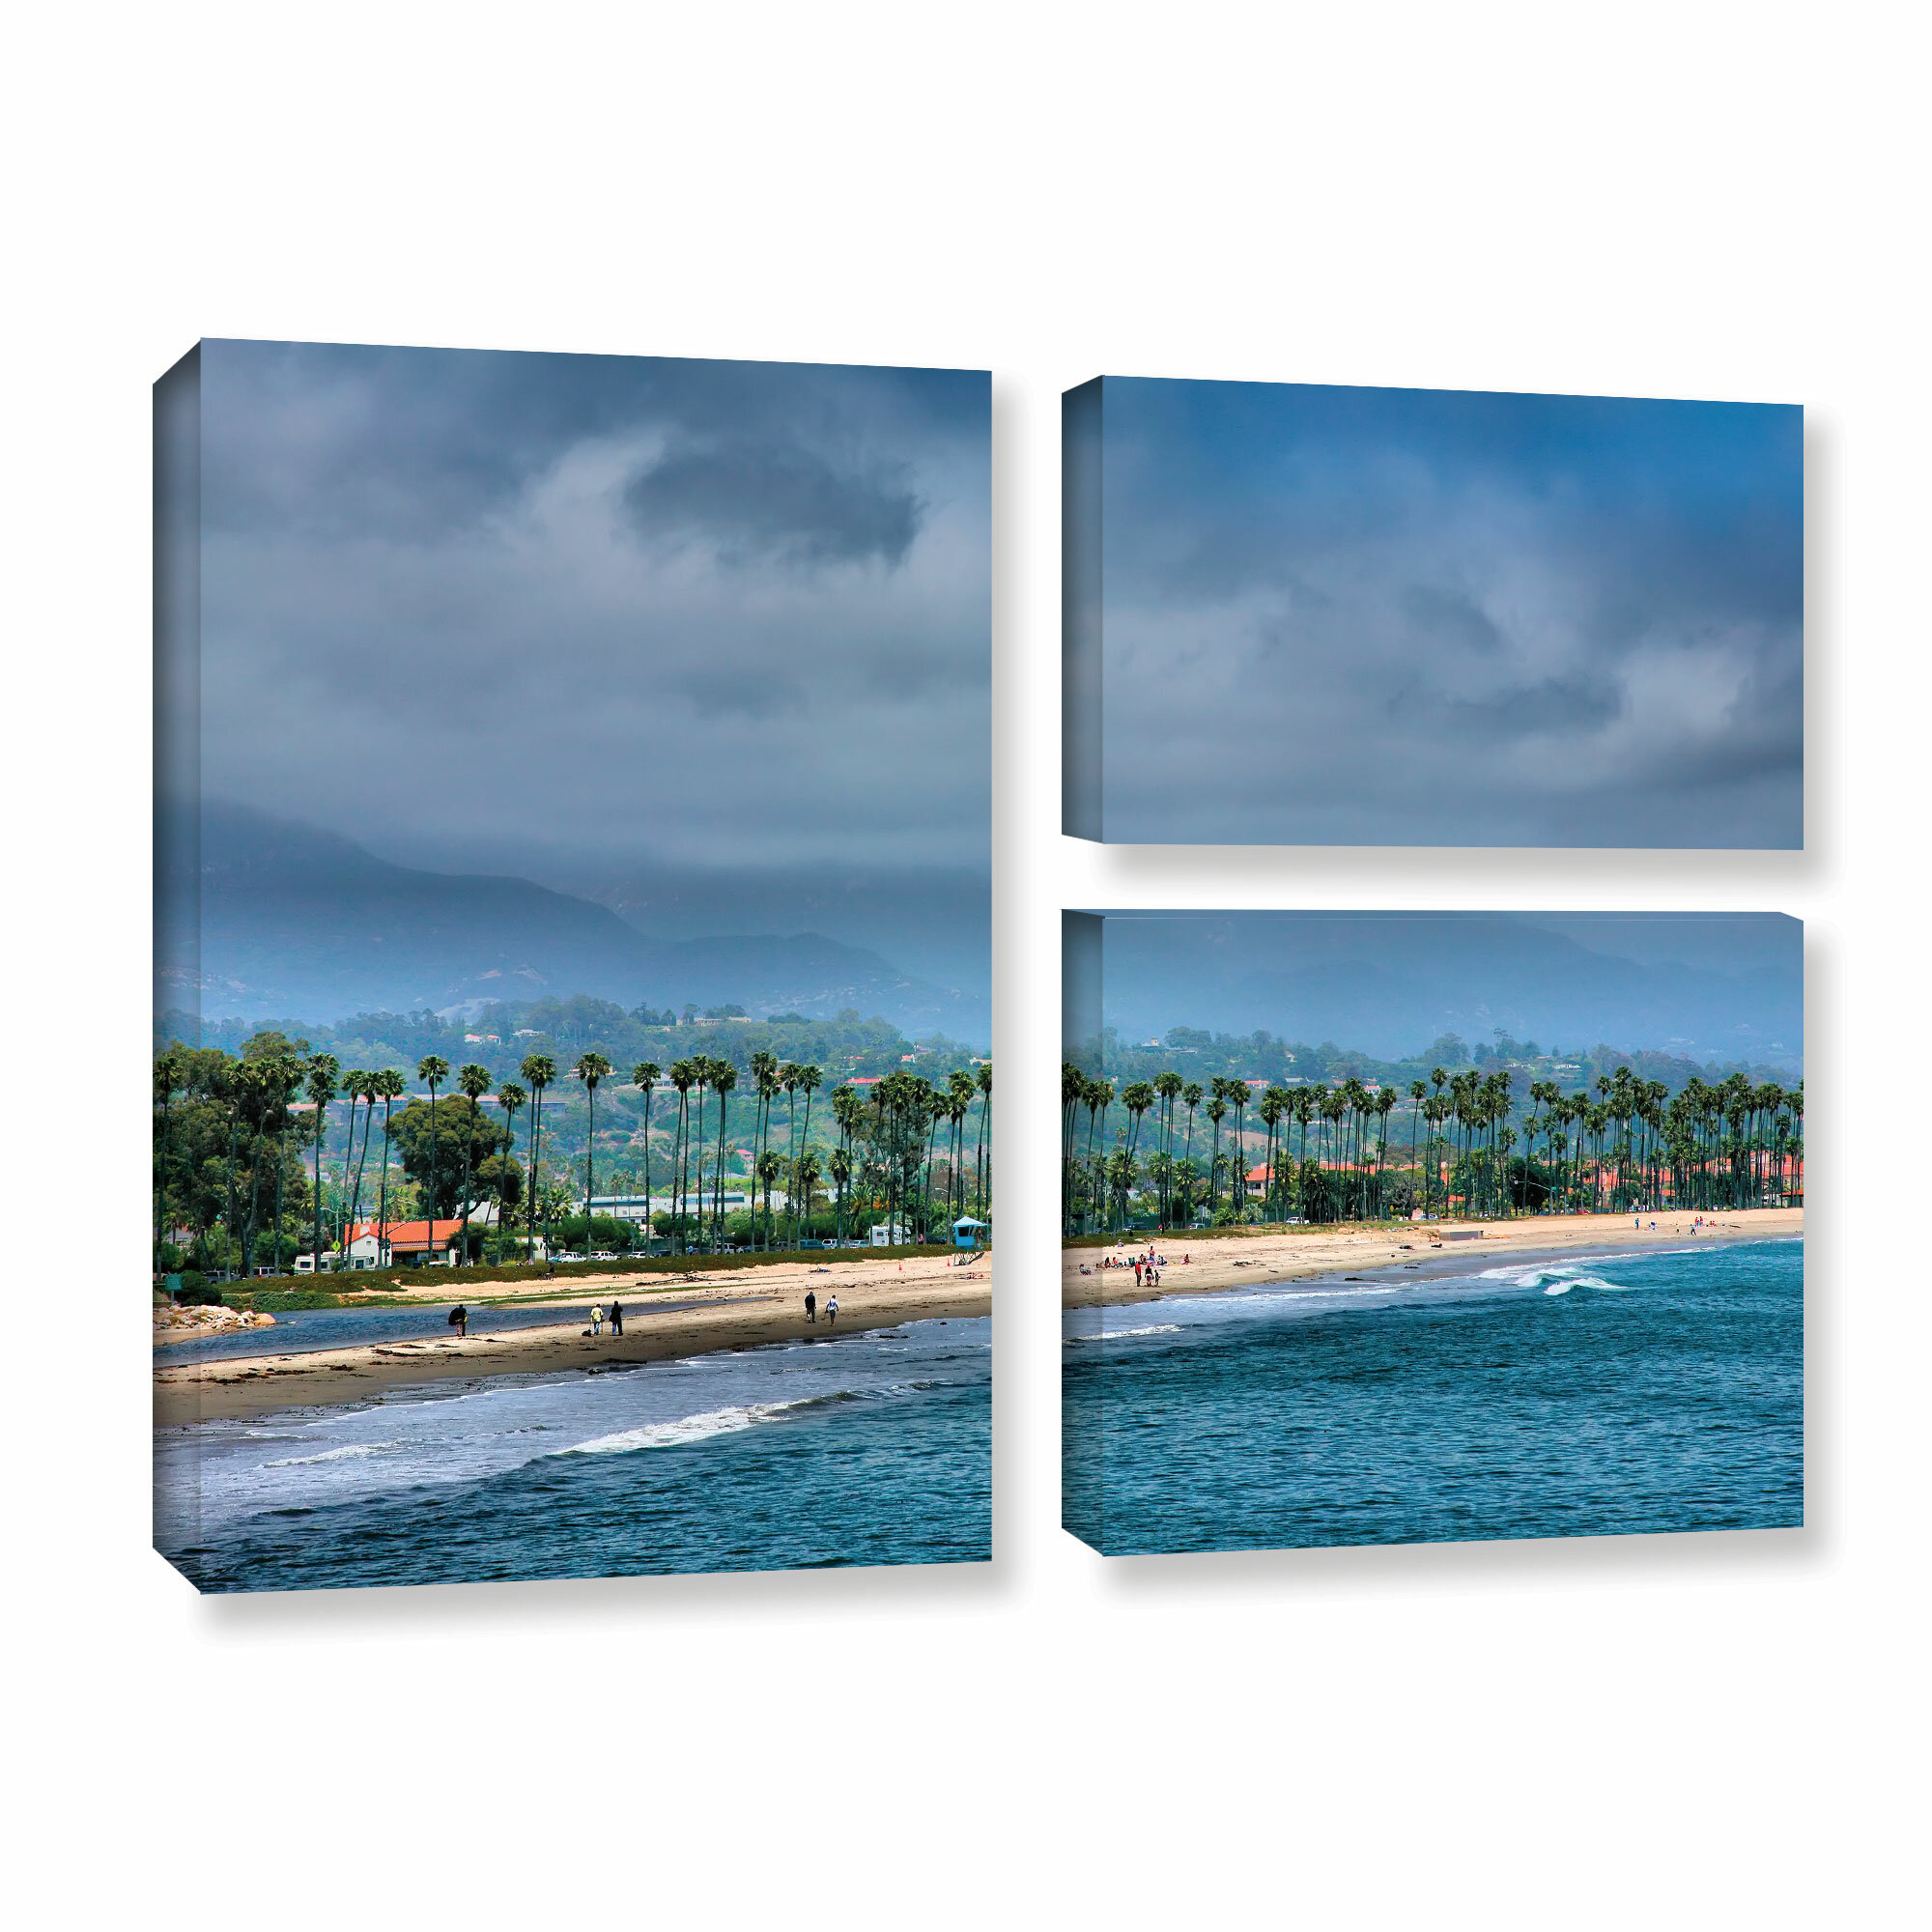 Artwall The Beach At Santa Barbara By Steve Ainsworth 3 Piece Photographic Print On Gallery Wrapped Canvas Set Wayfair